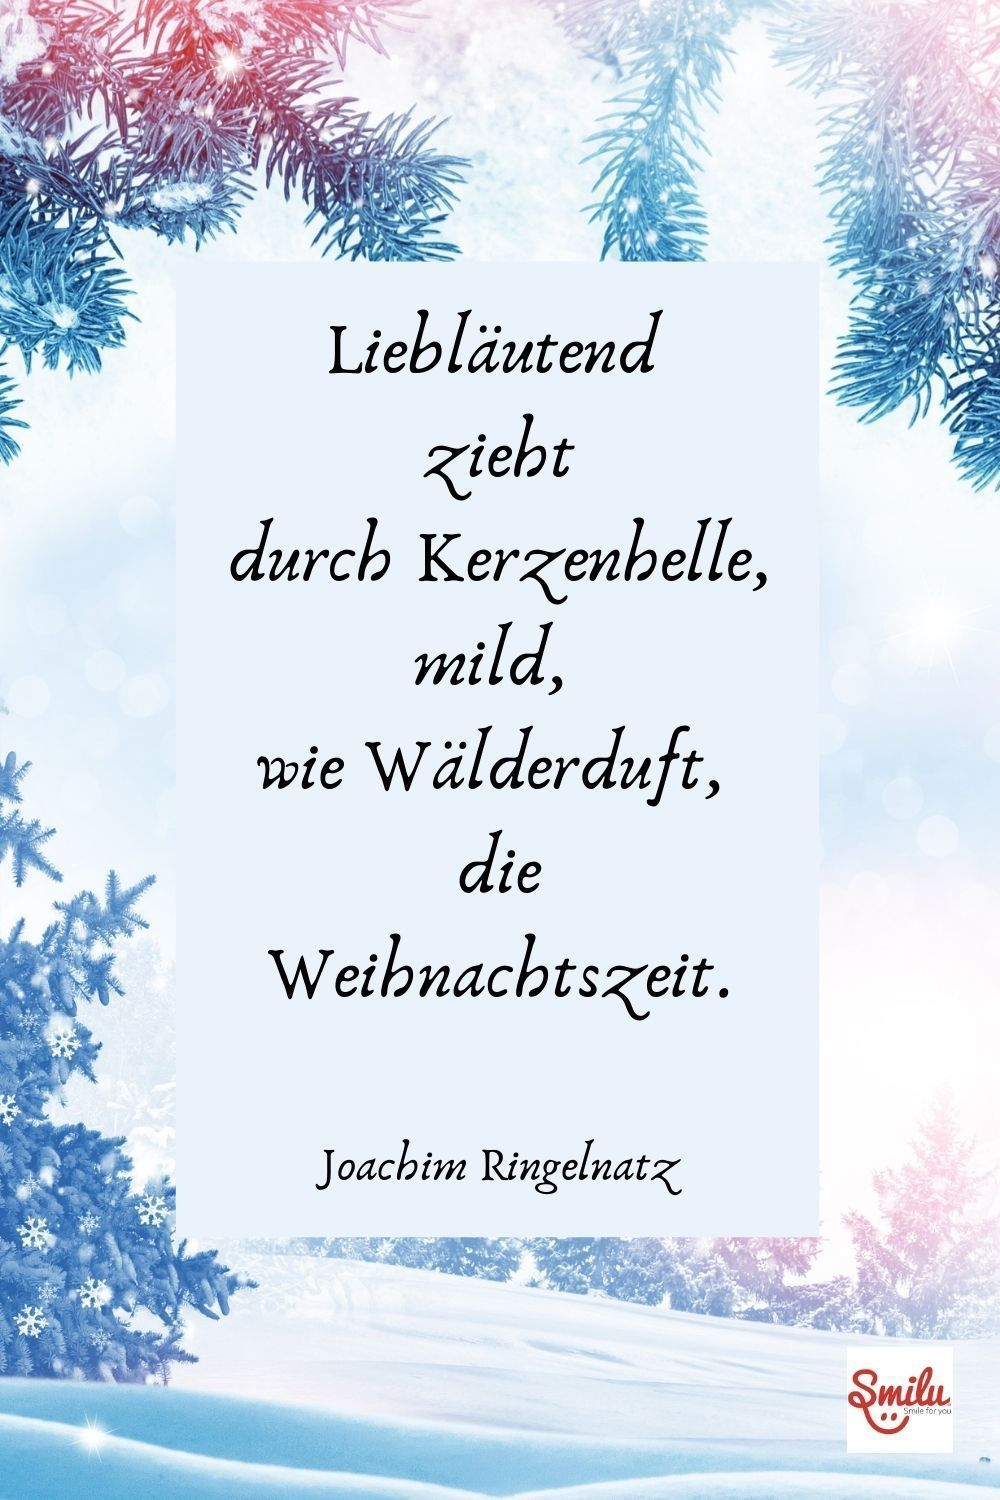 Adventsgedichte Adventsspruche In 2020 Advent Spruche Gedichte Zum Advent Adventsspruche